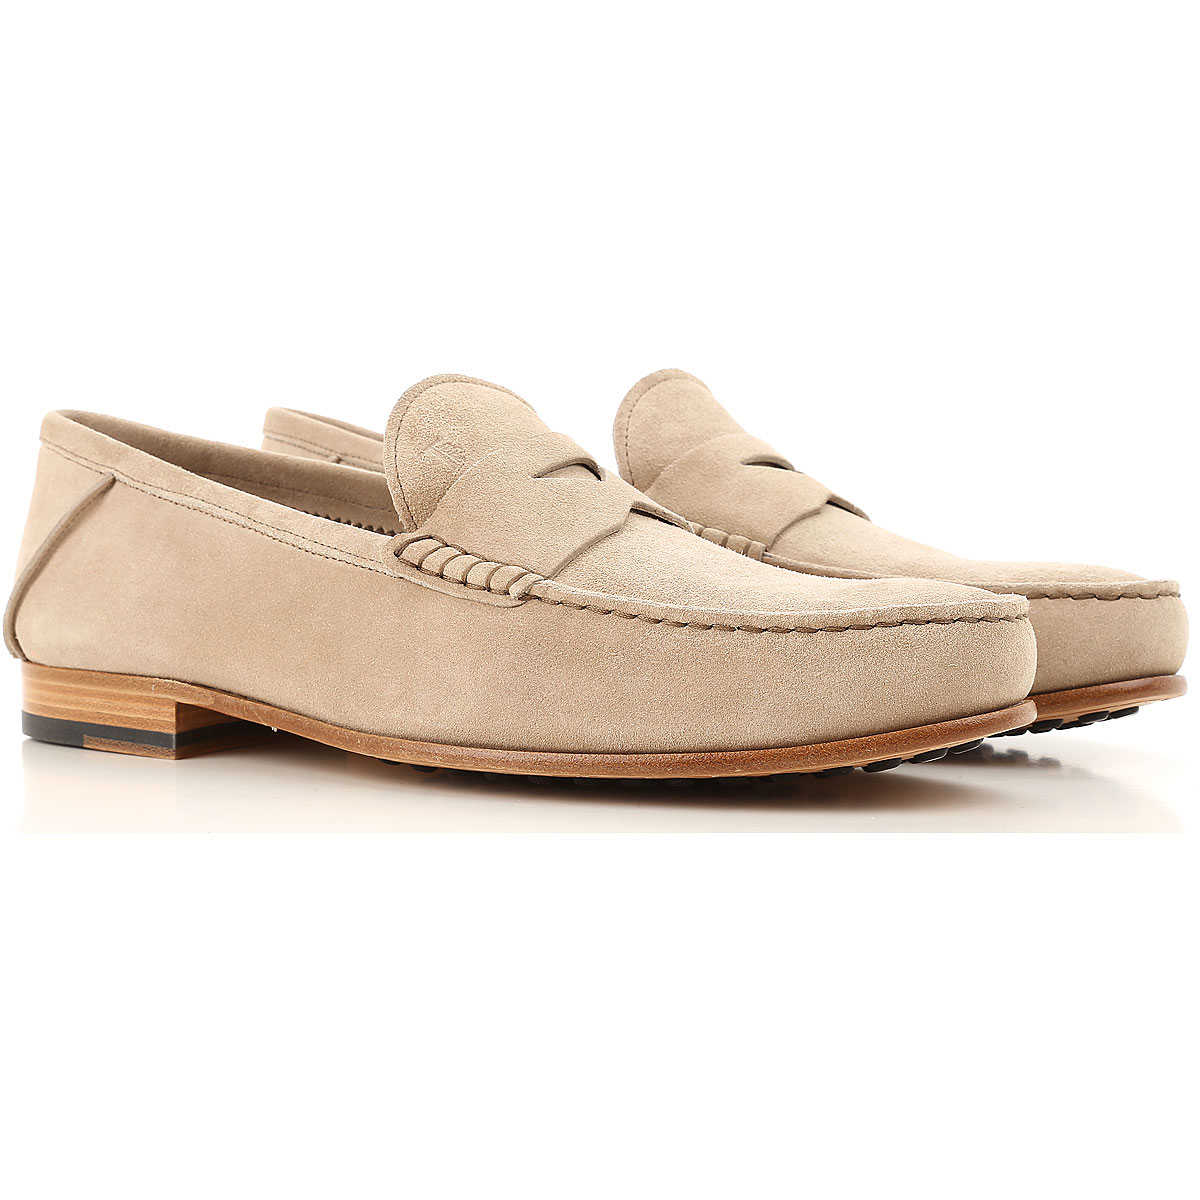 Tods Loafers for Men in Outlet Natural USA - GOOFASH